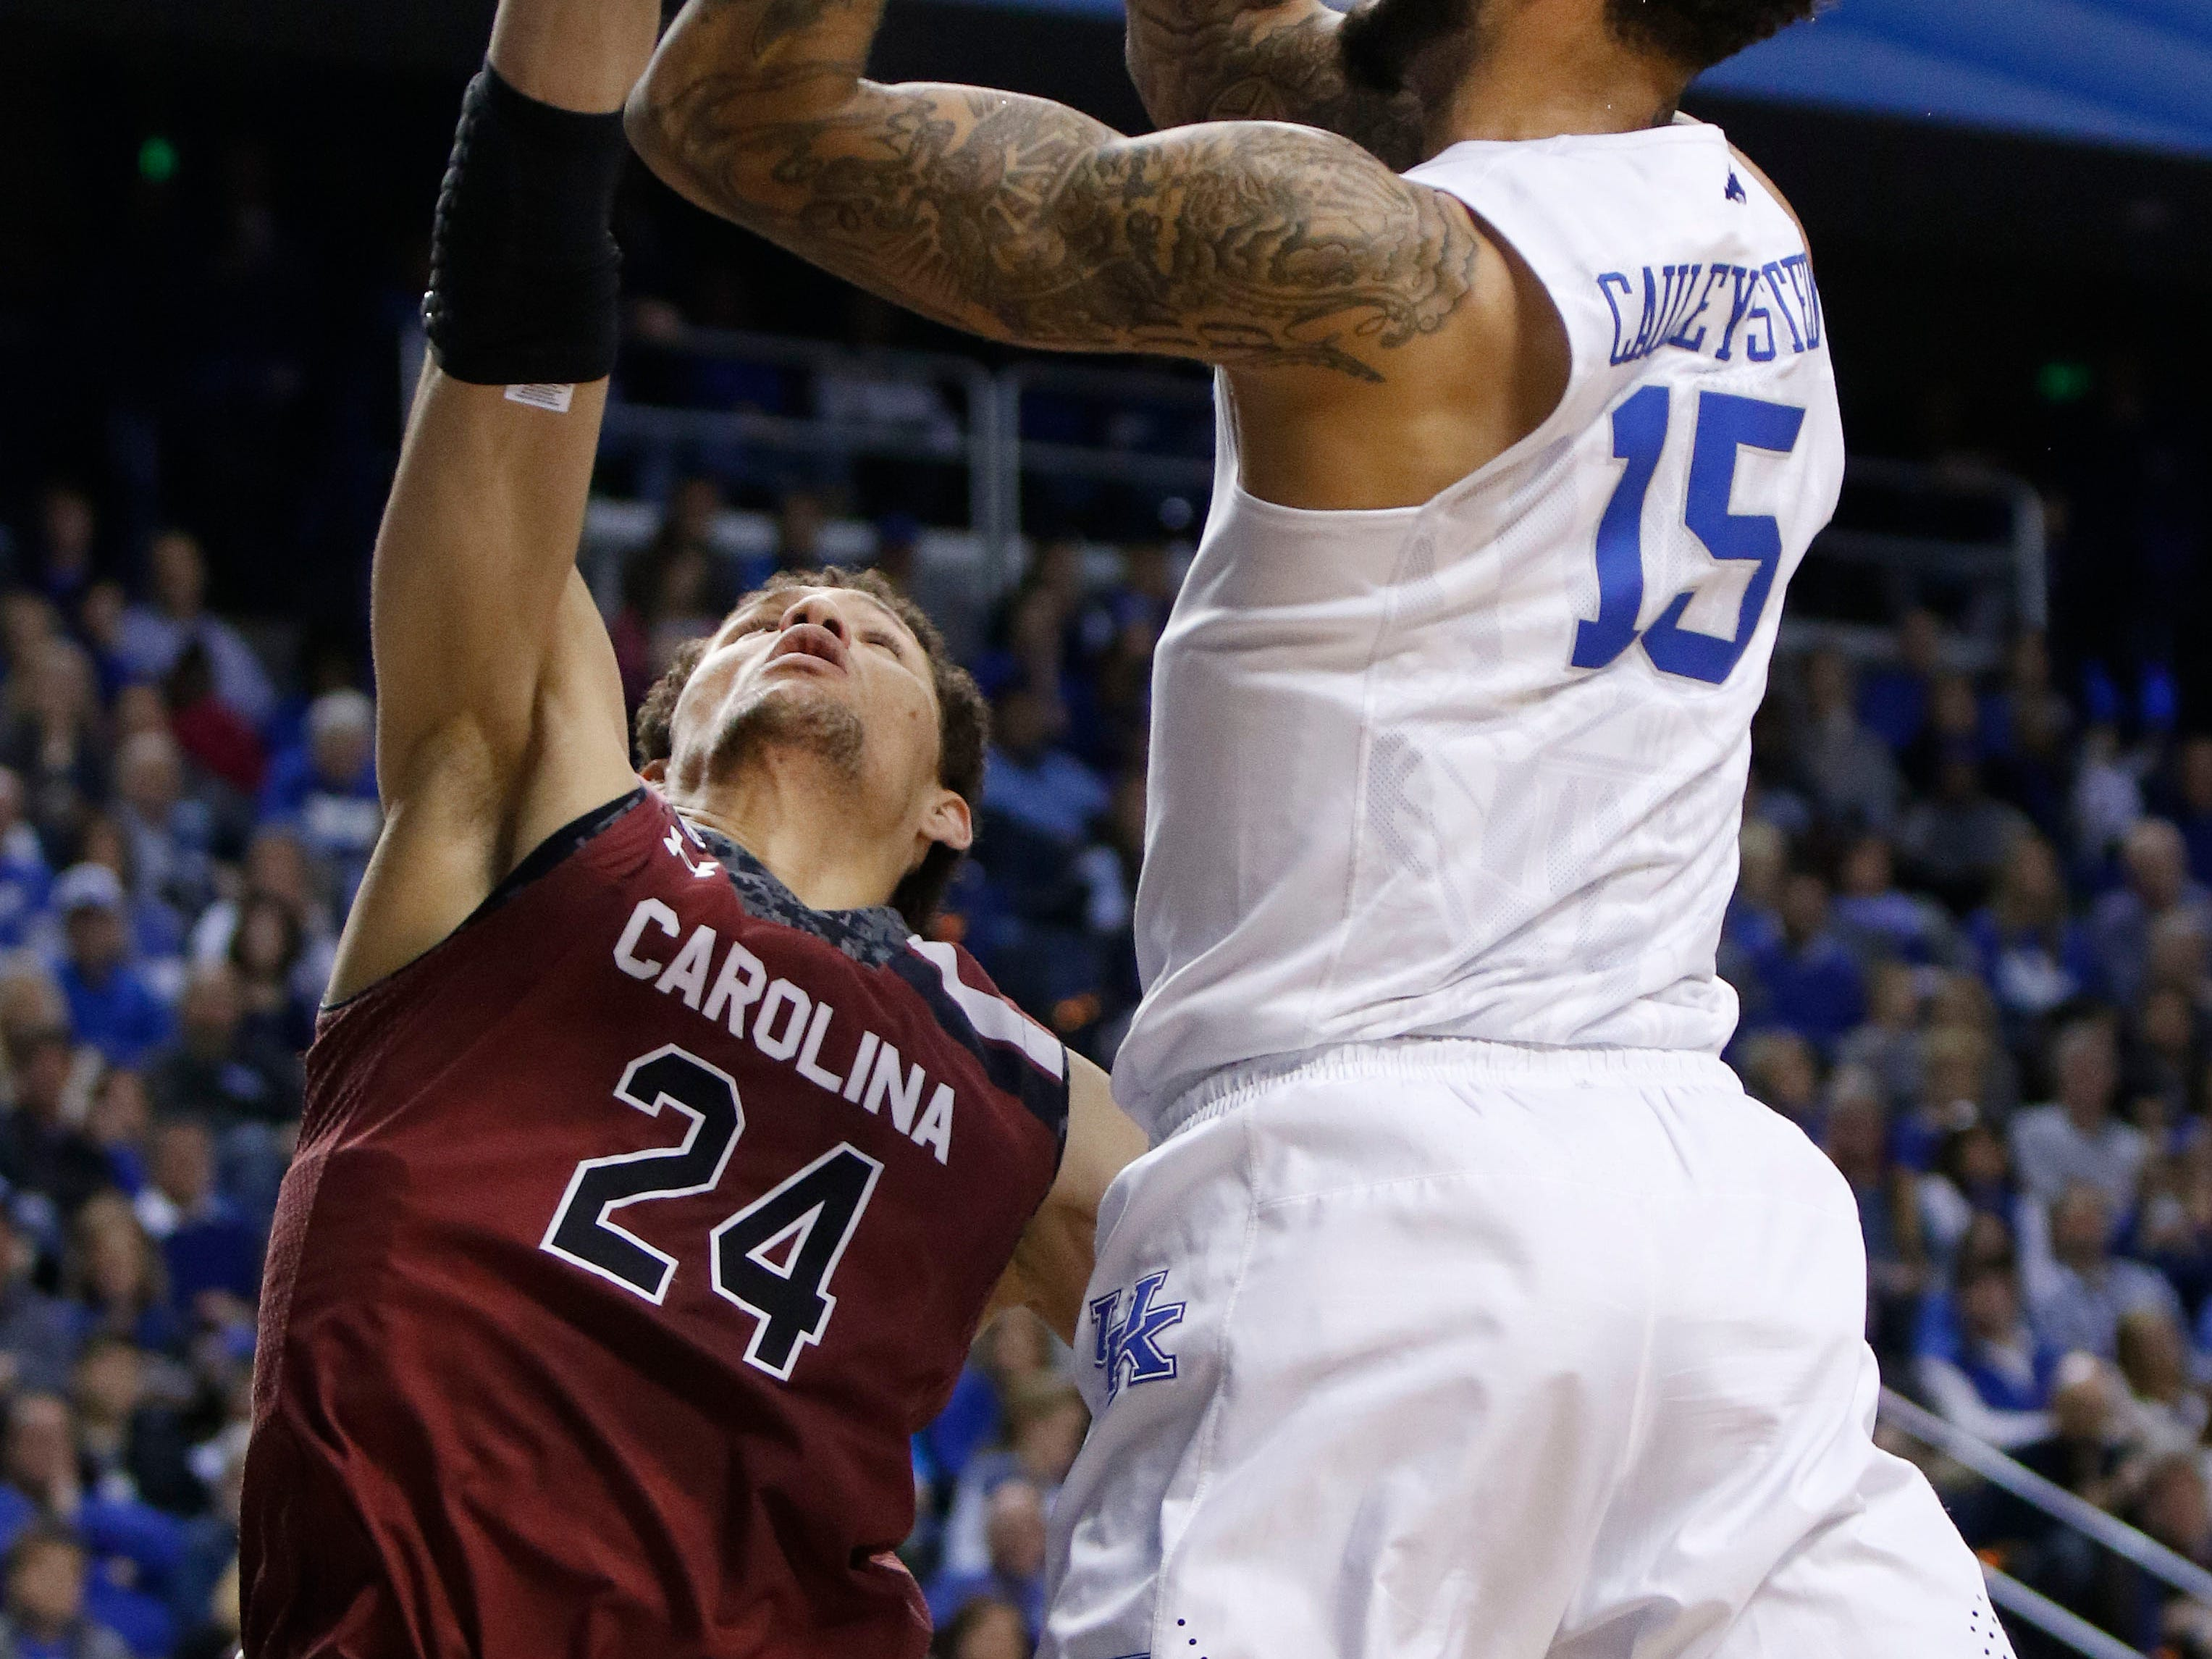 Kentucky's Willie Cauley-Stein (15) shoots while defended by South Carolina's Michael Carrera (24) during the first half of an NCAA college basketball game, Saturday, Feb. 14, 2015, in Lexington, Ky. Kentucky won 77-43. (AP Photo/James Crisp)